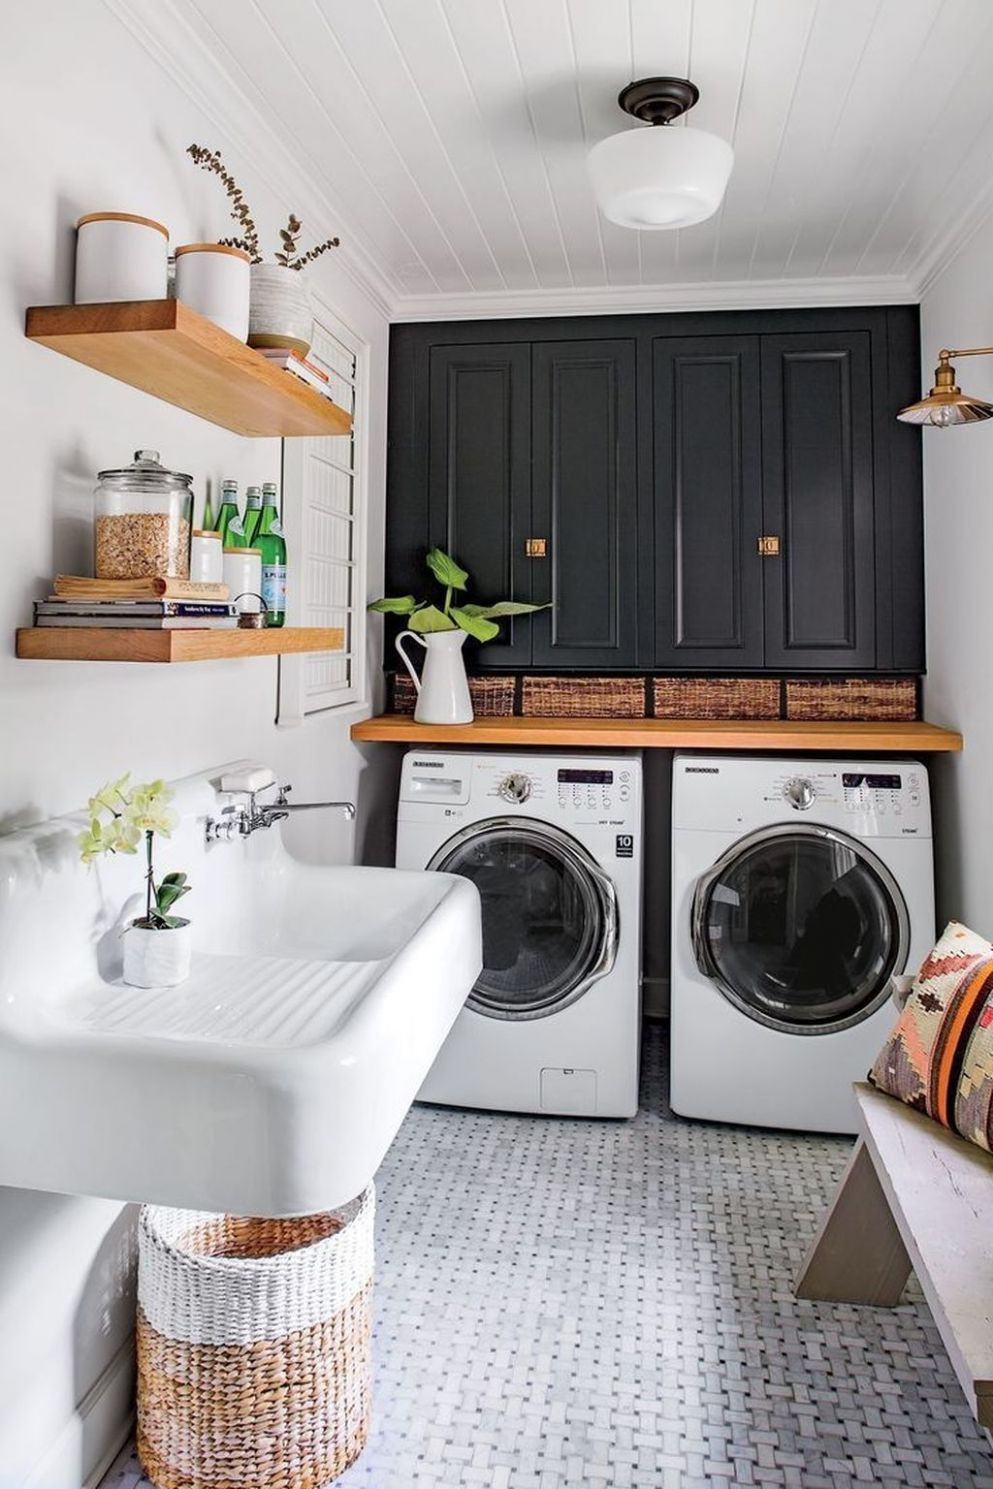 10+ Gorgeous Mudroom Ideas For Laundry Room | Mudroom ideen ...